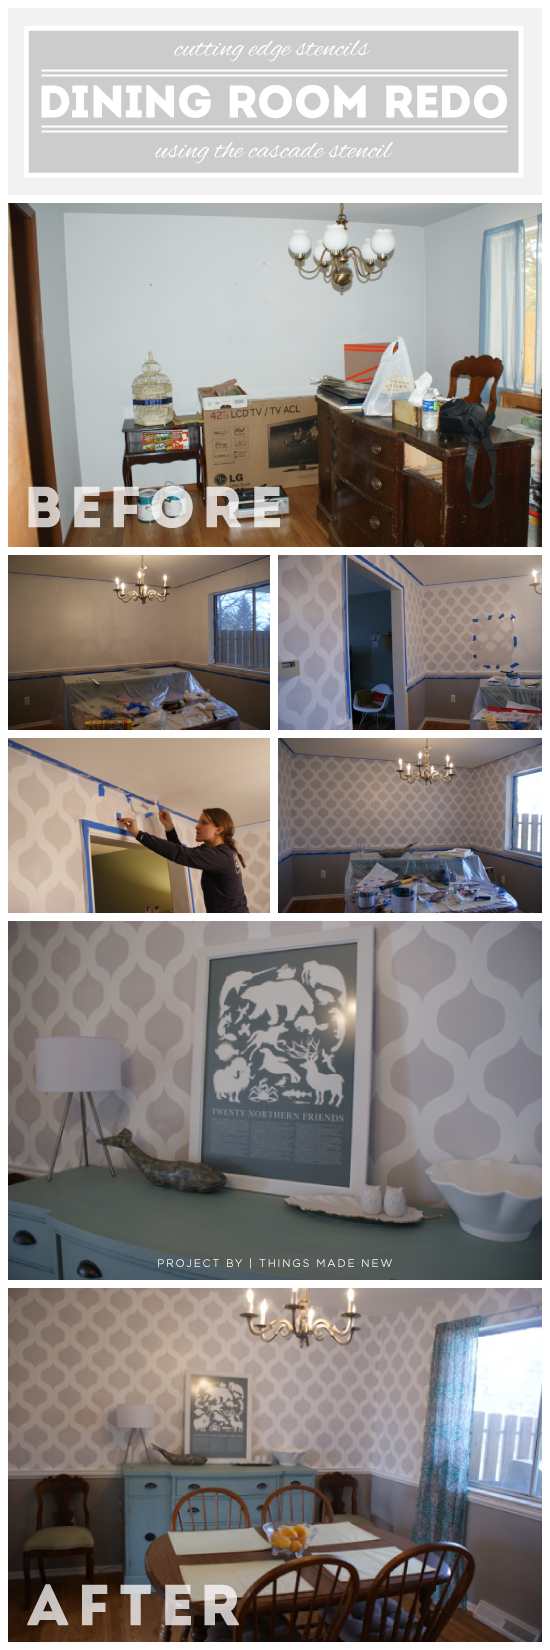 A DIY stenciled dining room using the Cascade Stencil for a wallpaper look. http://www.cuttingedgestencils.com/cascade-allover-stencil-pattern.html